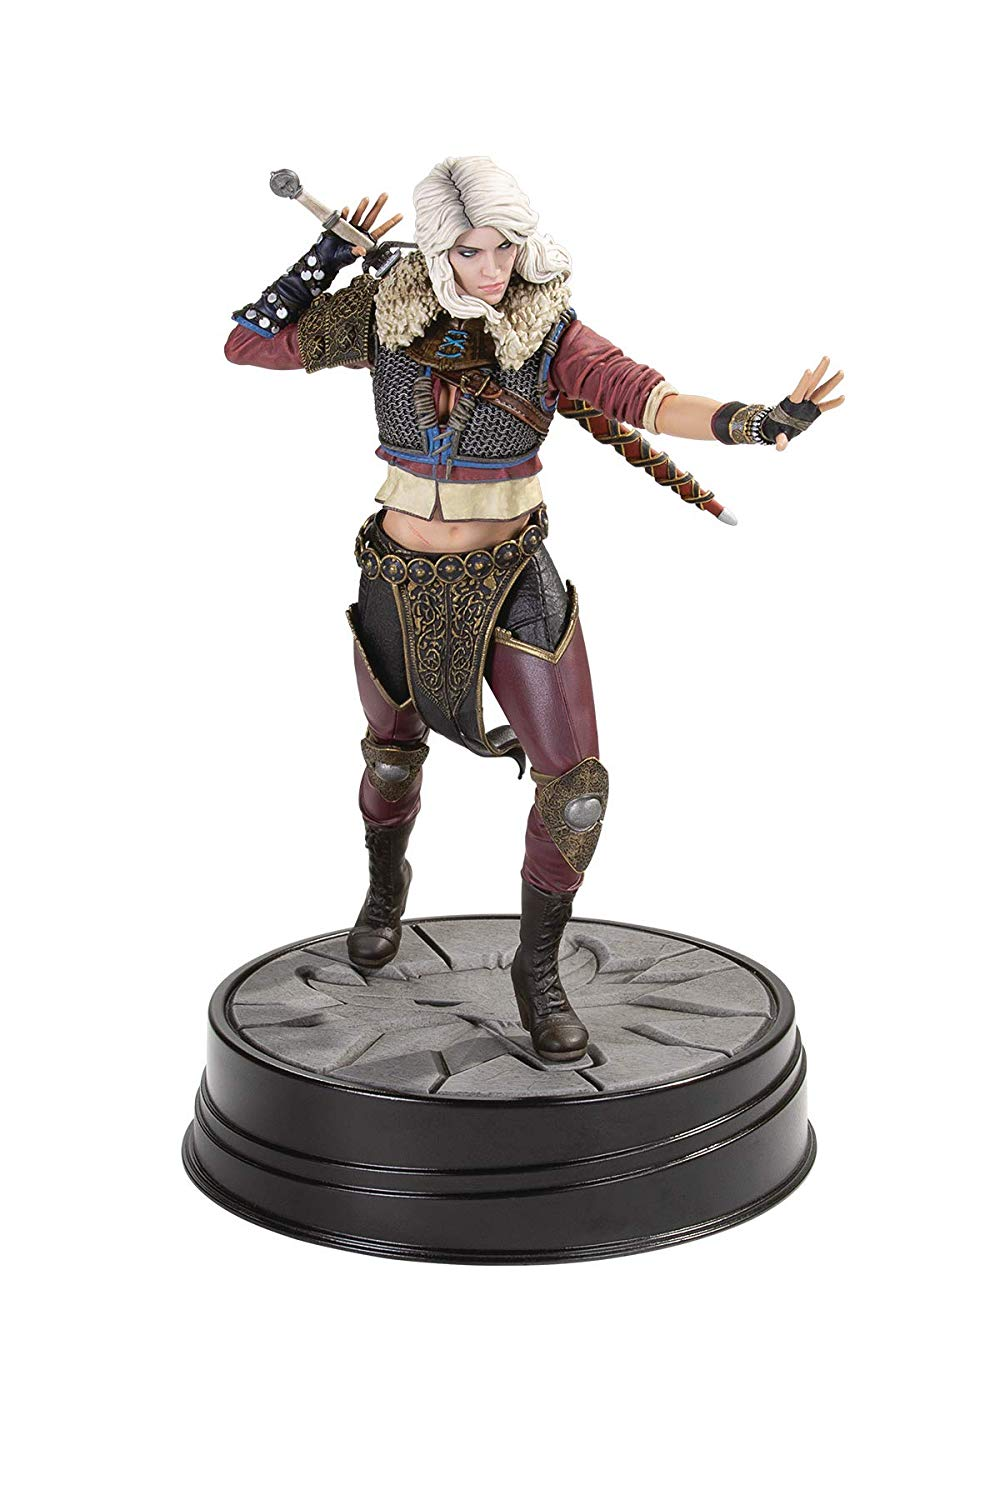 Dark Horse The Witcher 3 Series 2 Figures